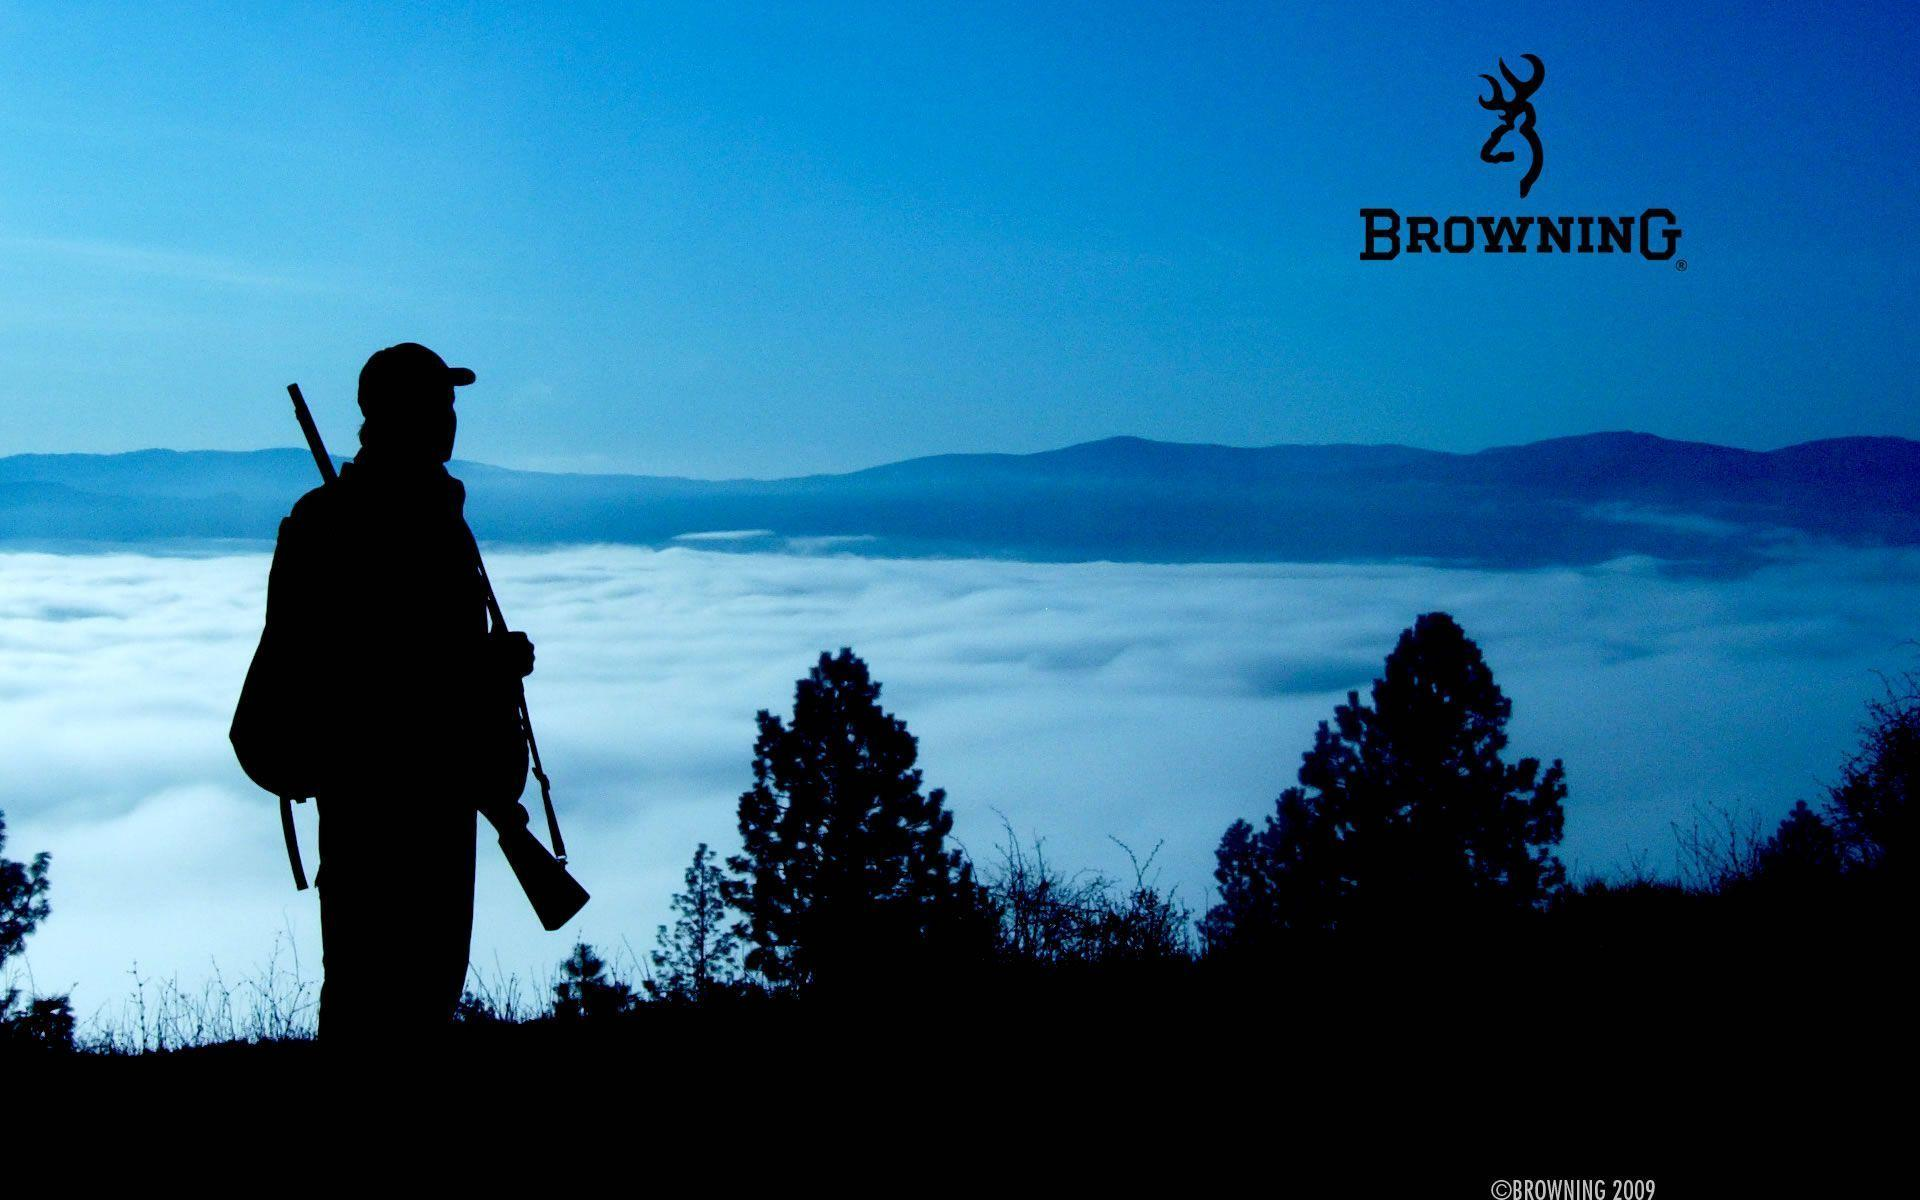 Free Browning Symbol Wallpapers · Browning Wallpapers